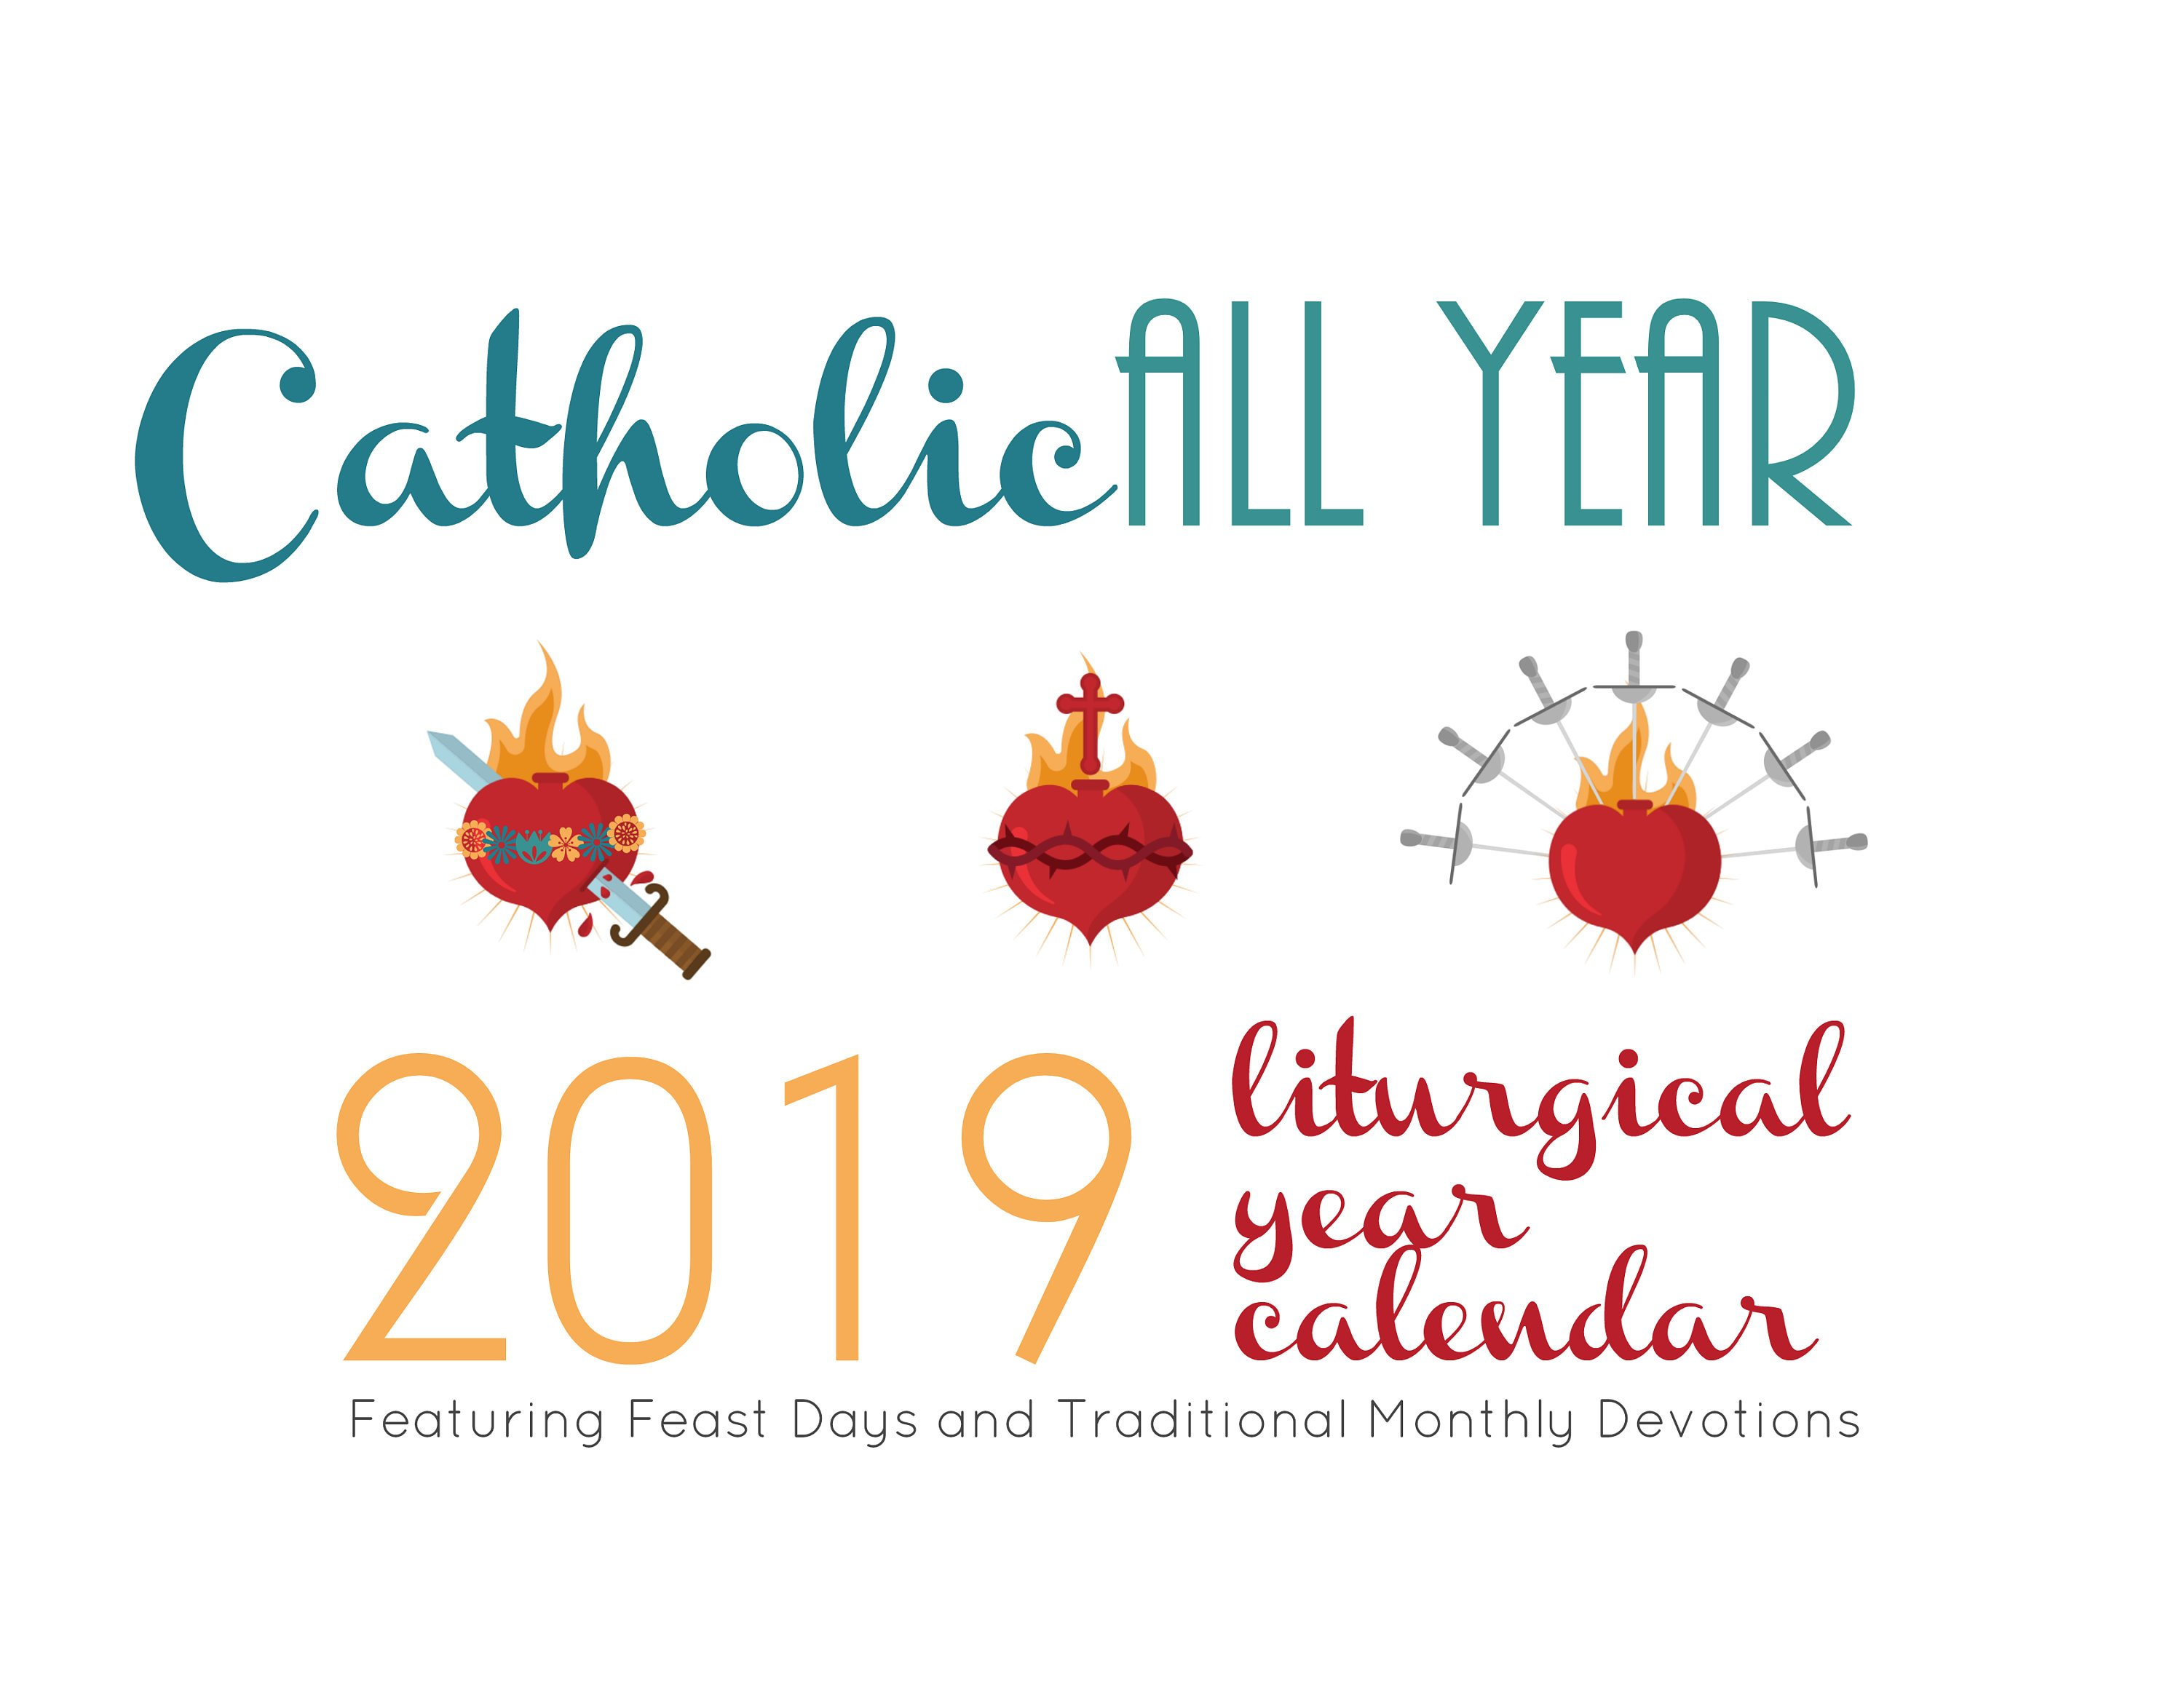 image relating to Liturgical Year Calendar Printable titled Catholic All Yr 2019 Liturgical Yr Calendar *electronic down load*